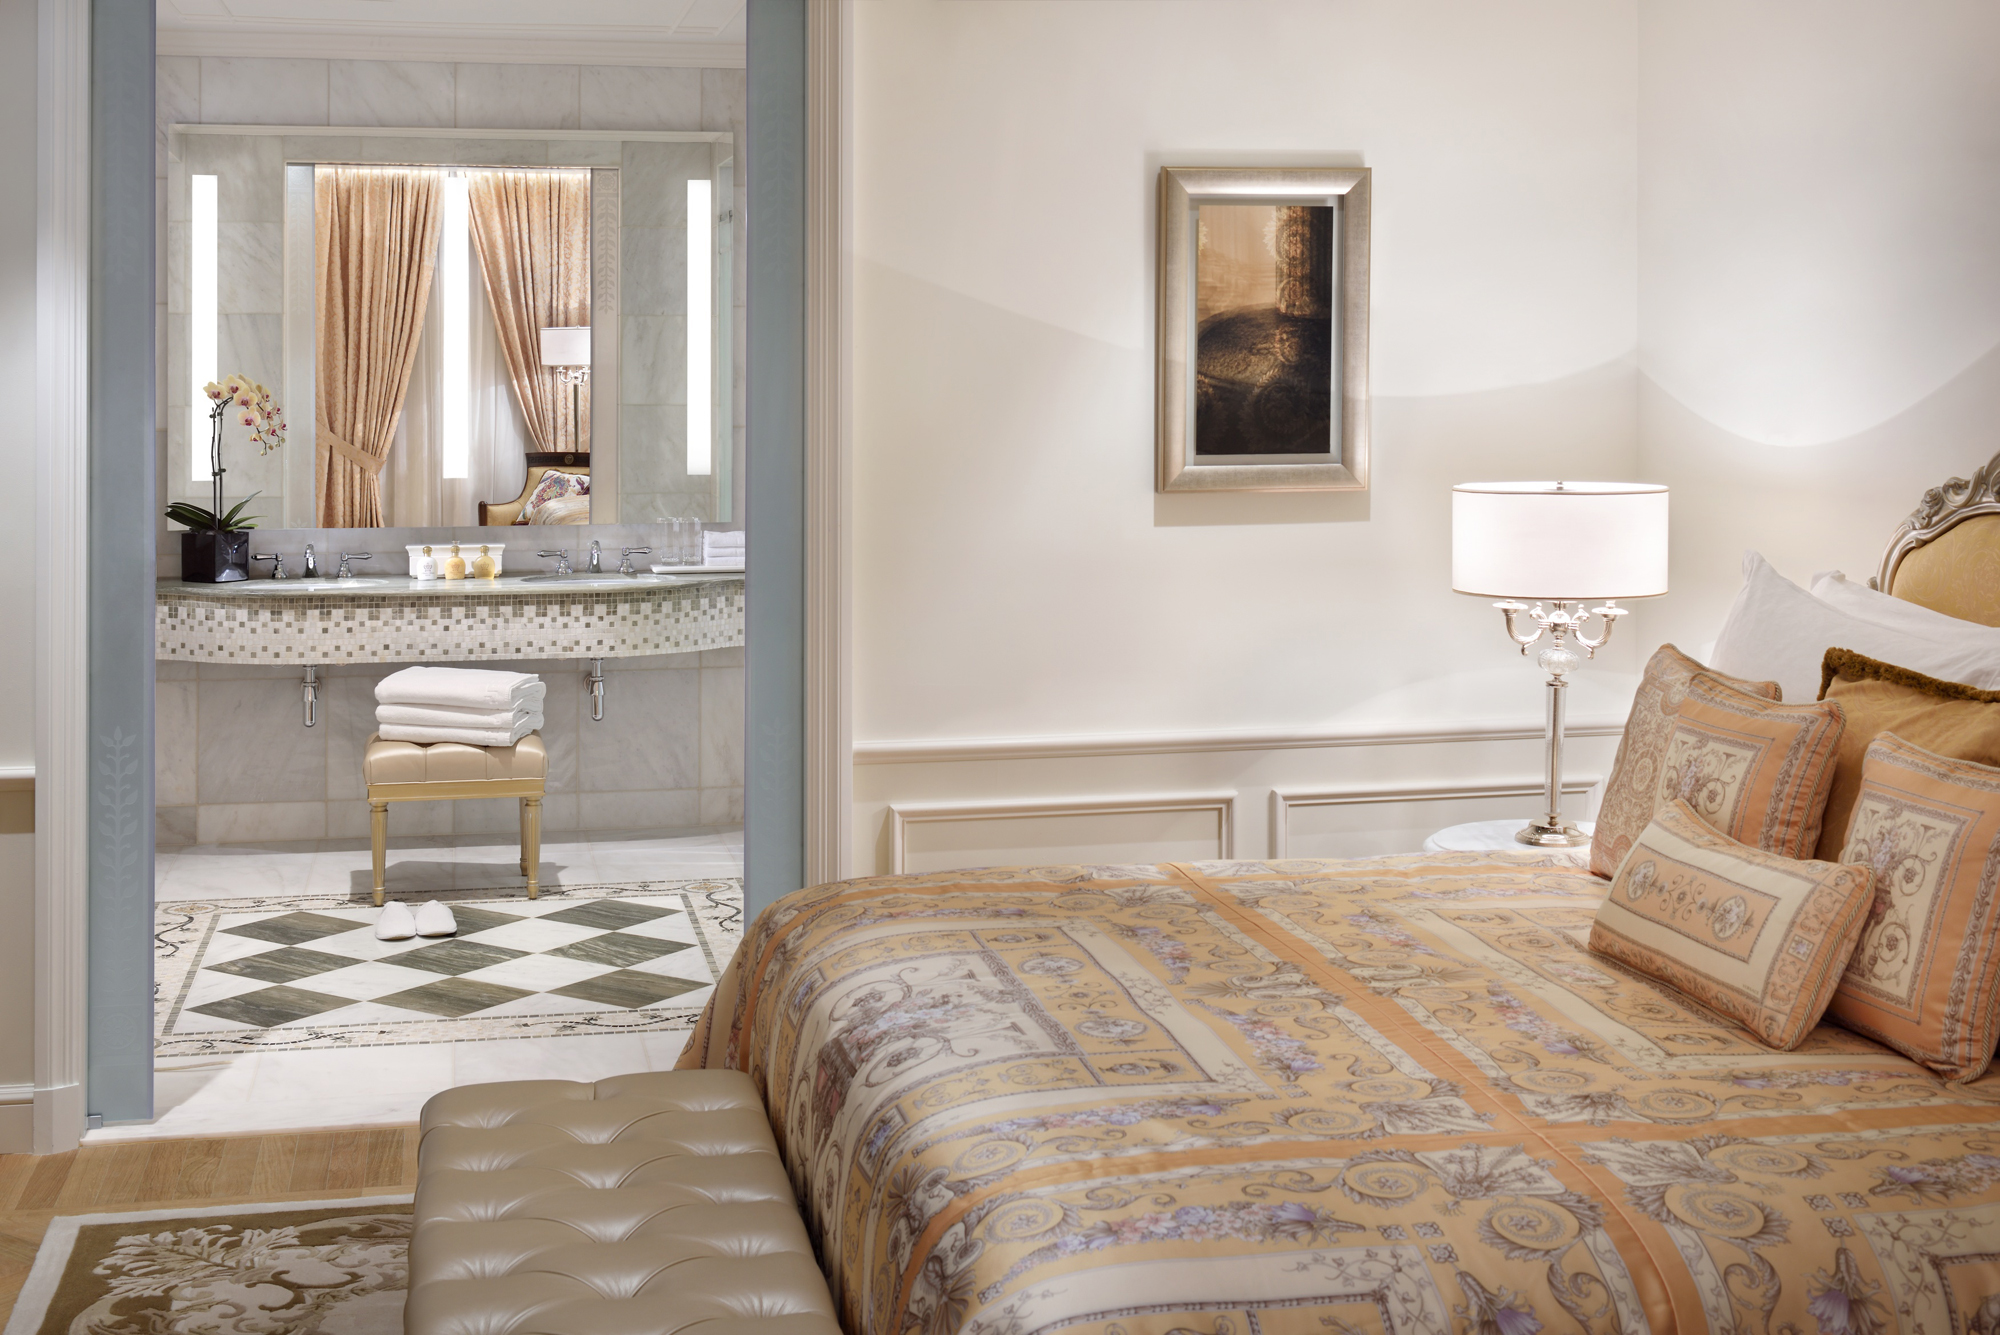 Permiere_Versace_Club_Room_(City_View)_-_Bedroom_with_bathroom.jpg